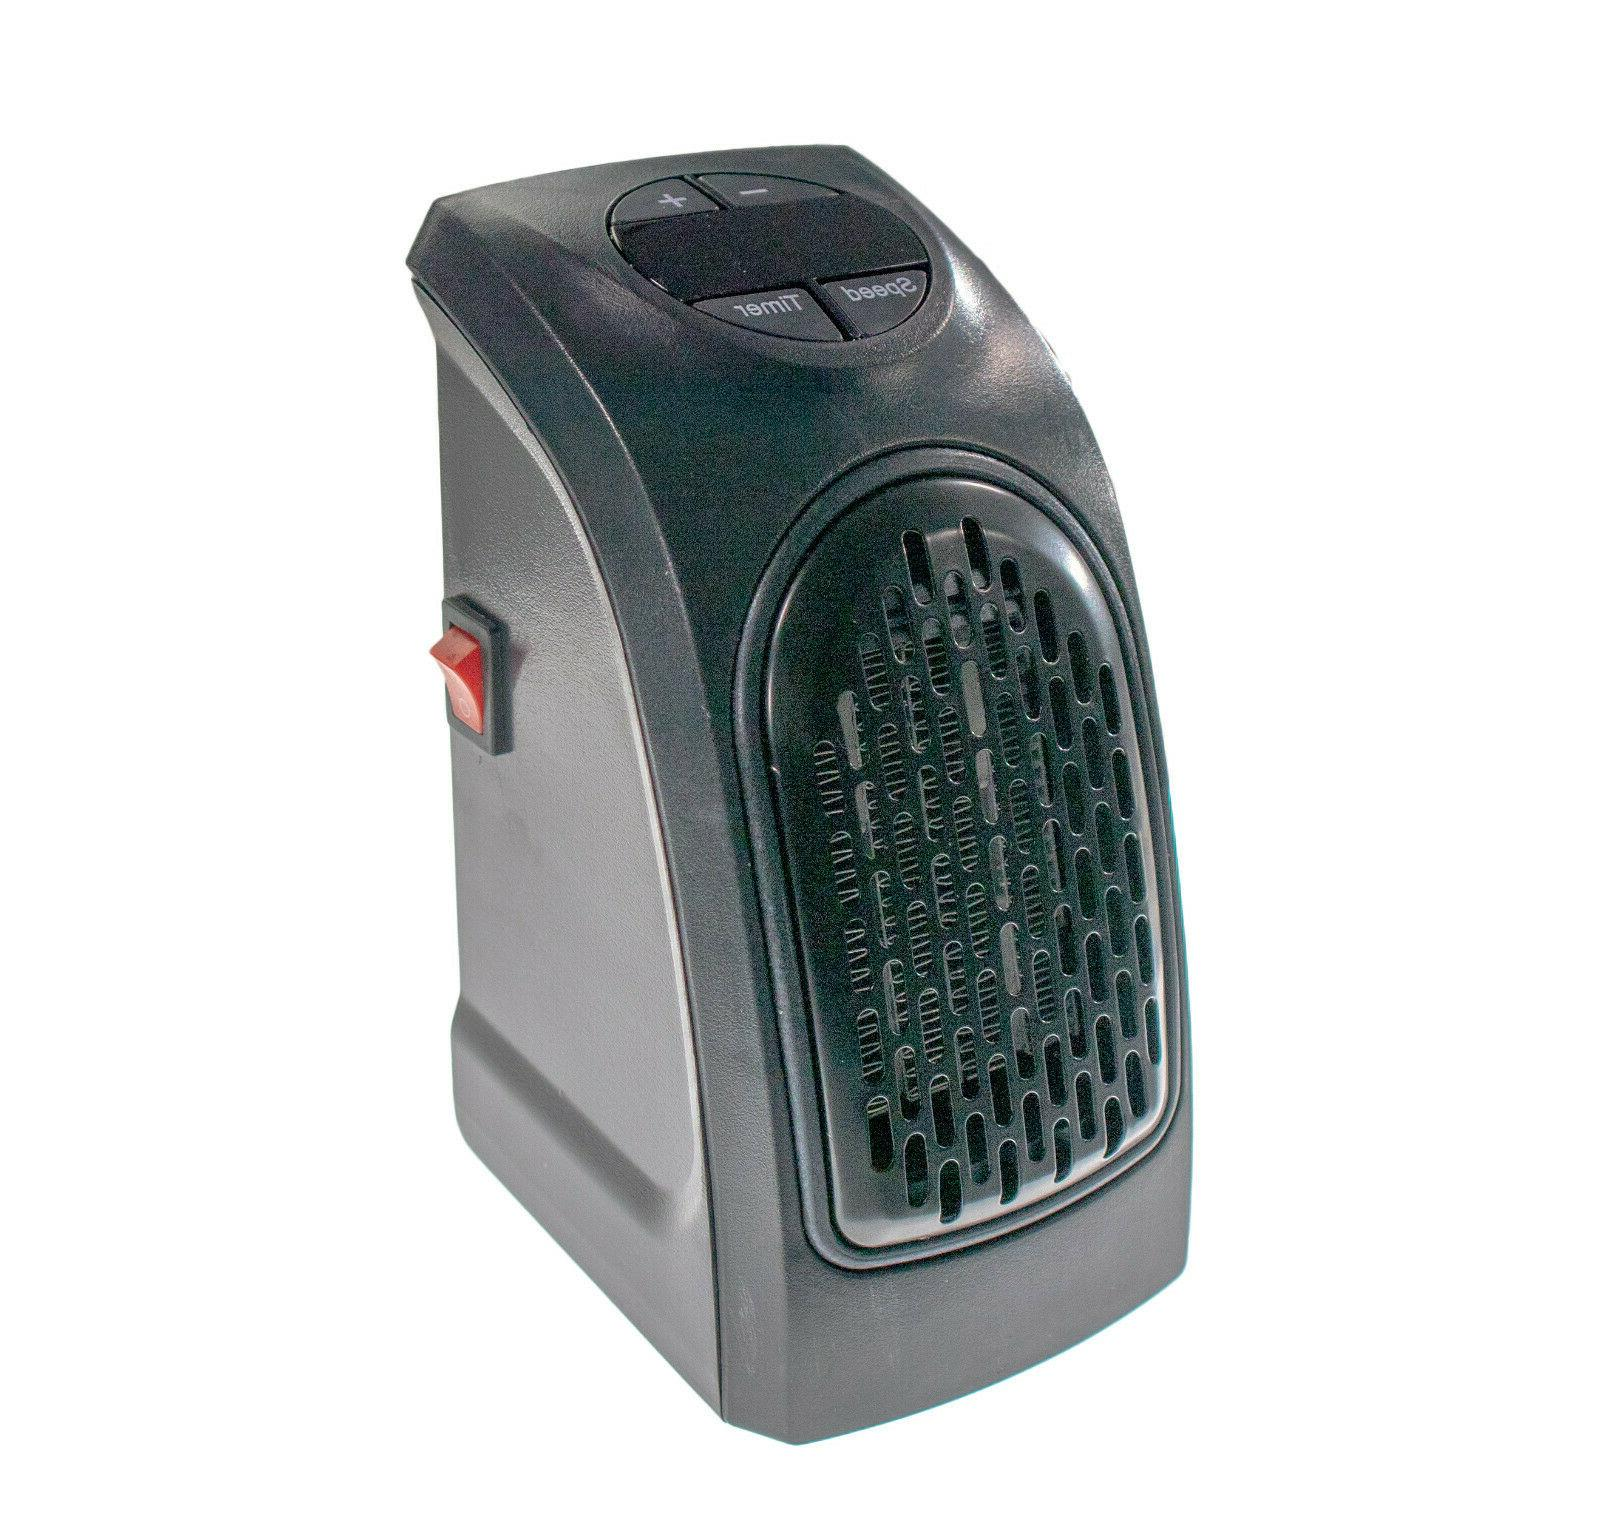 Wall Outlet Plug Ceramic Handy Space Heater 400w Timer